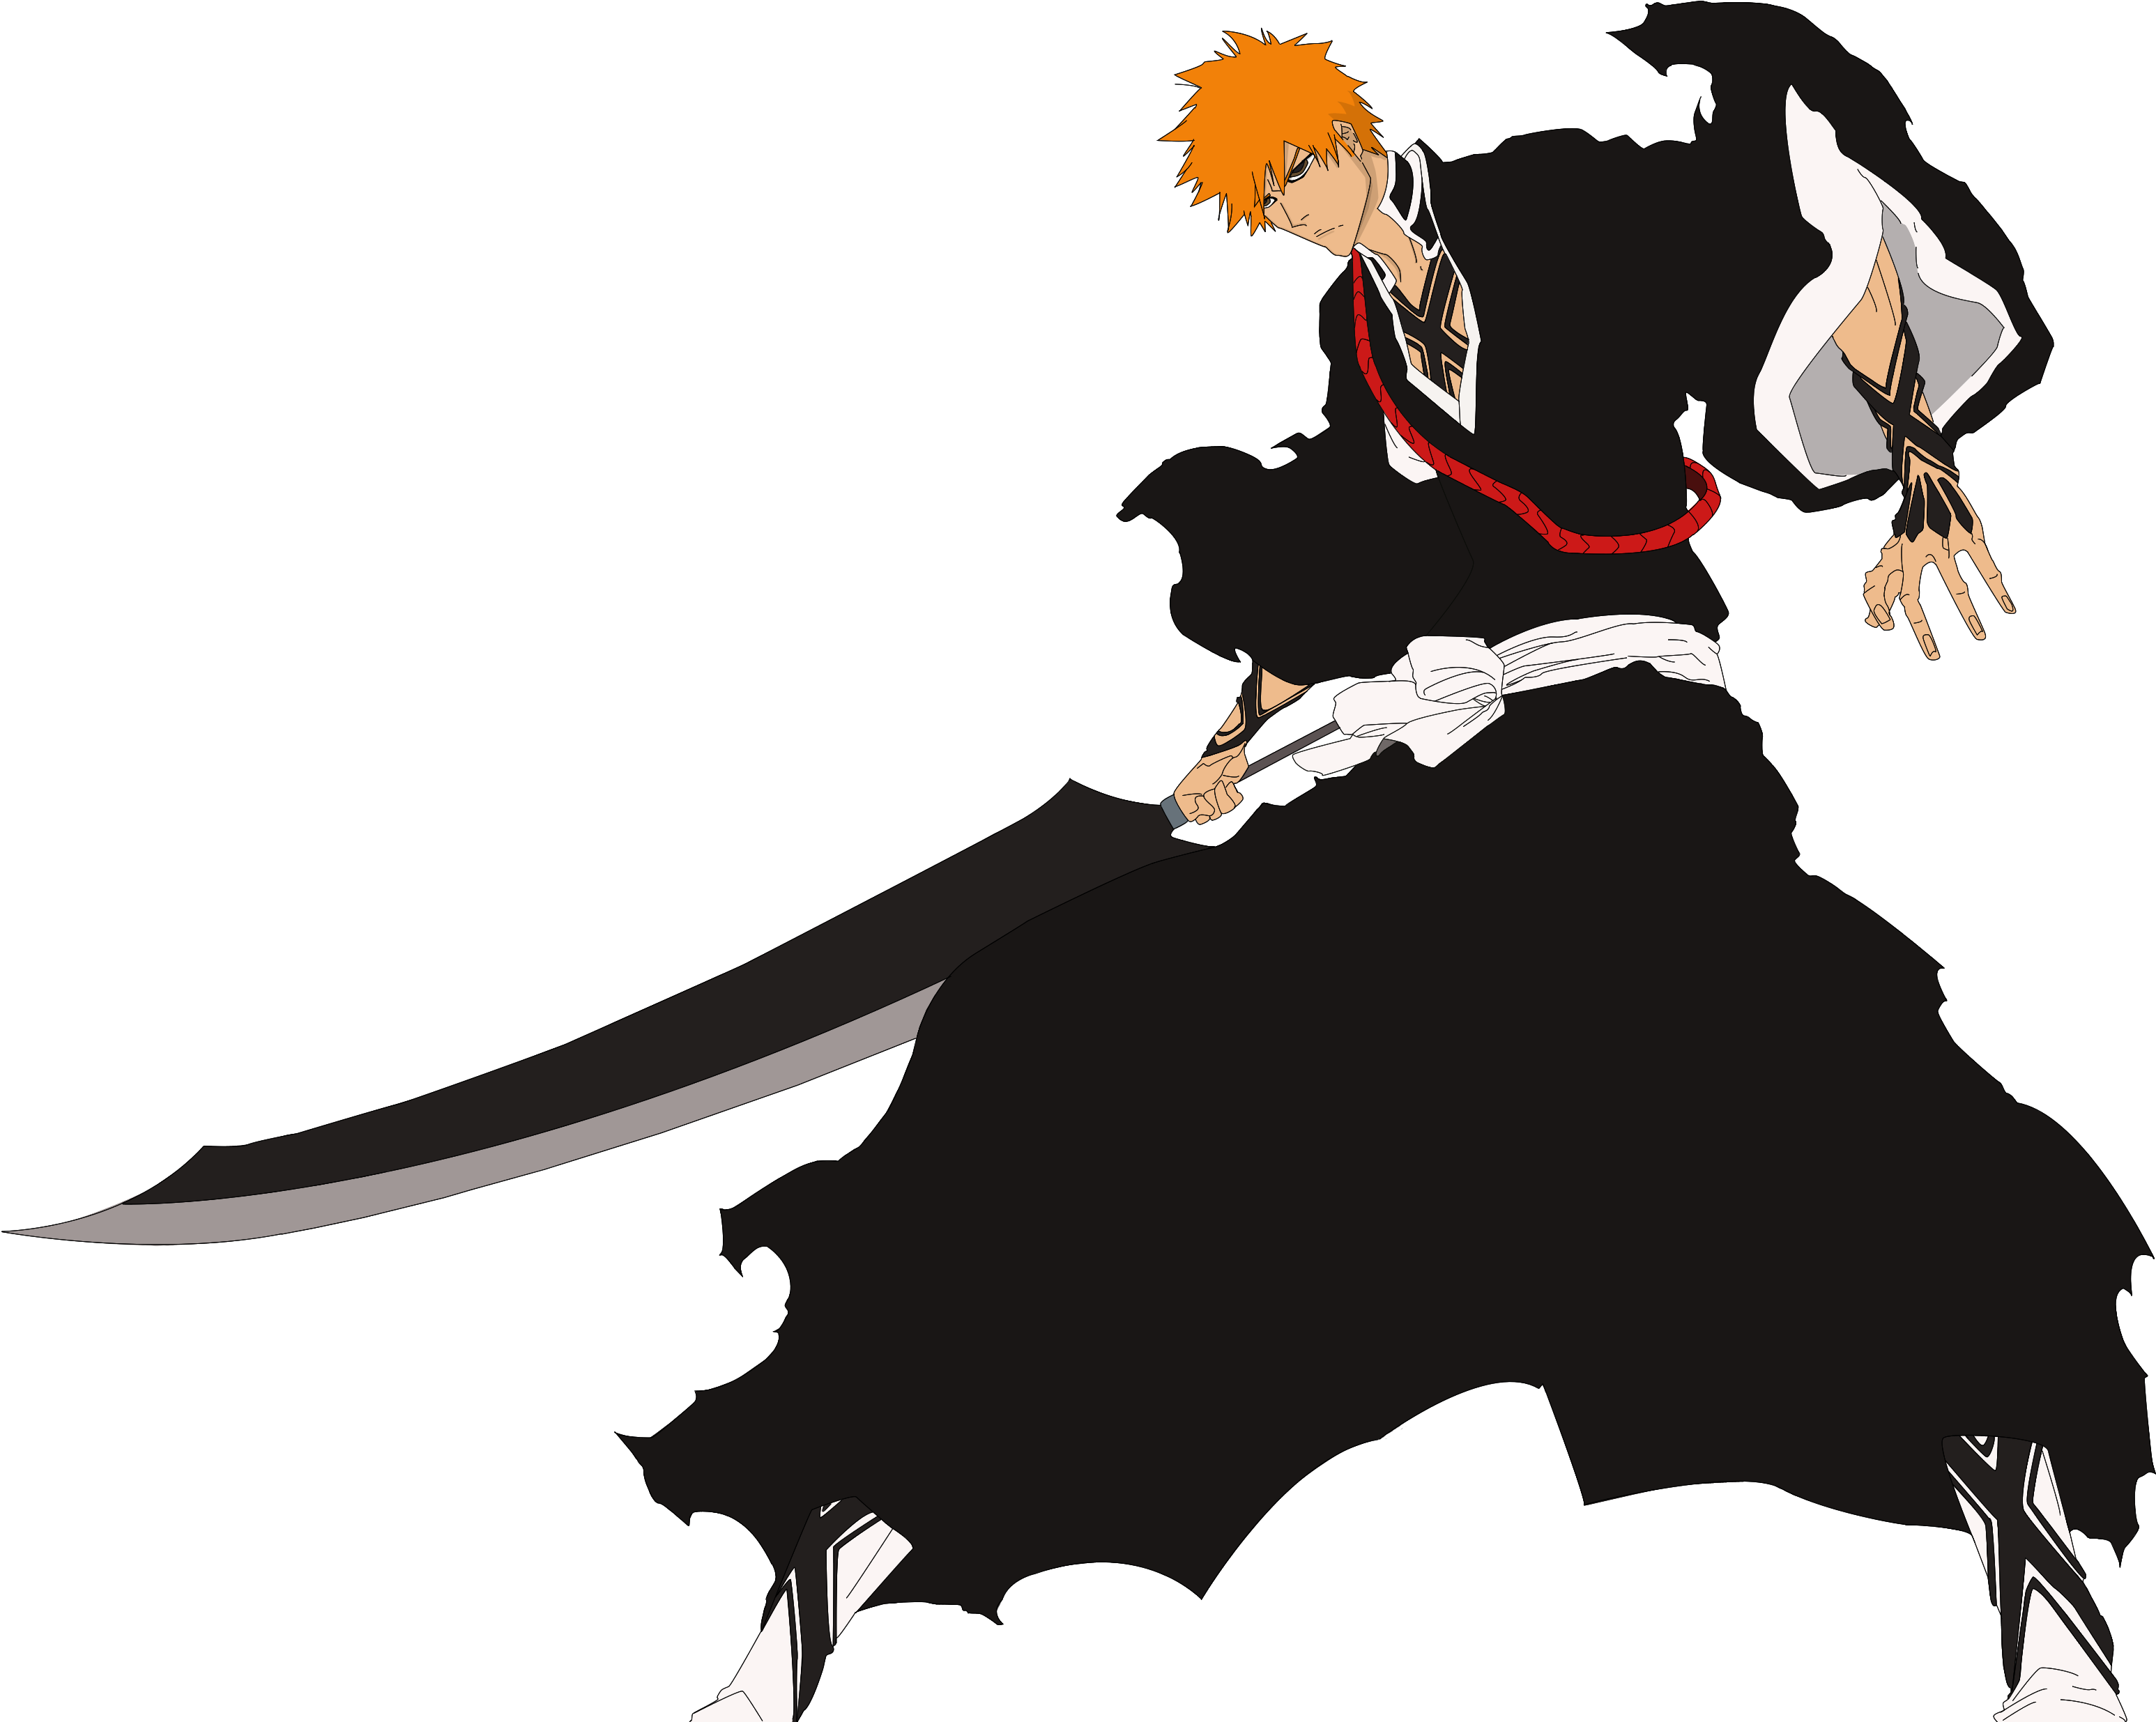 HD Anime Vector Png.